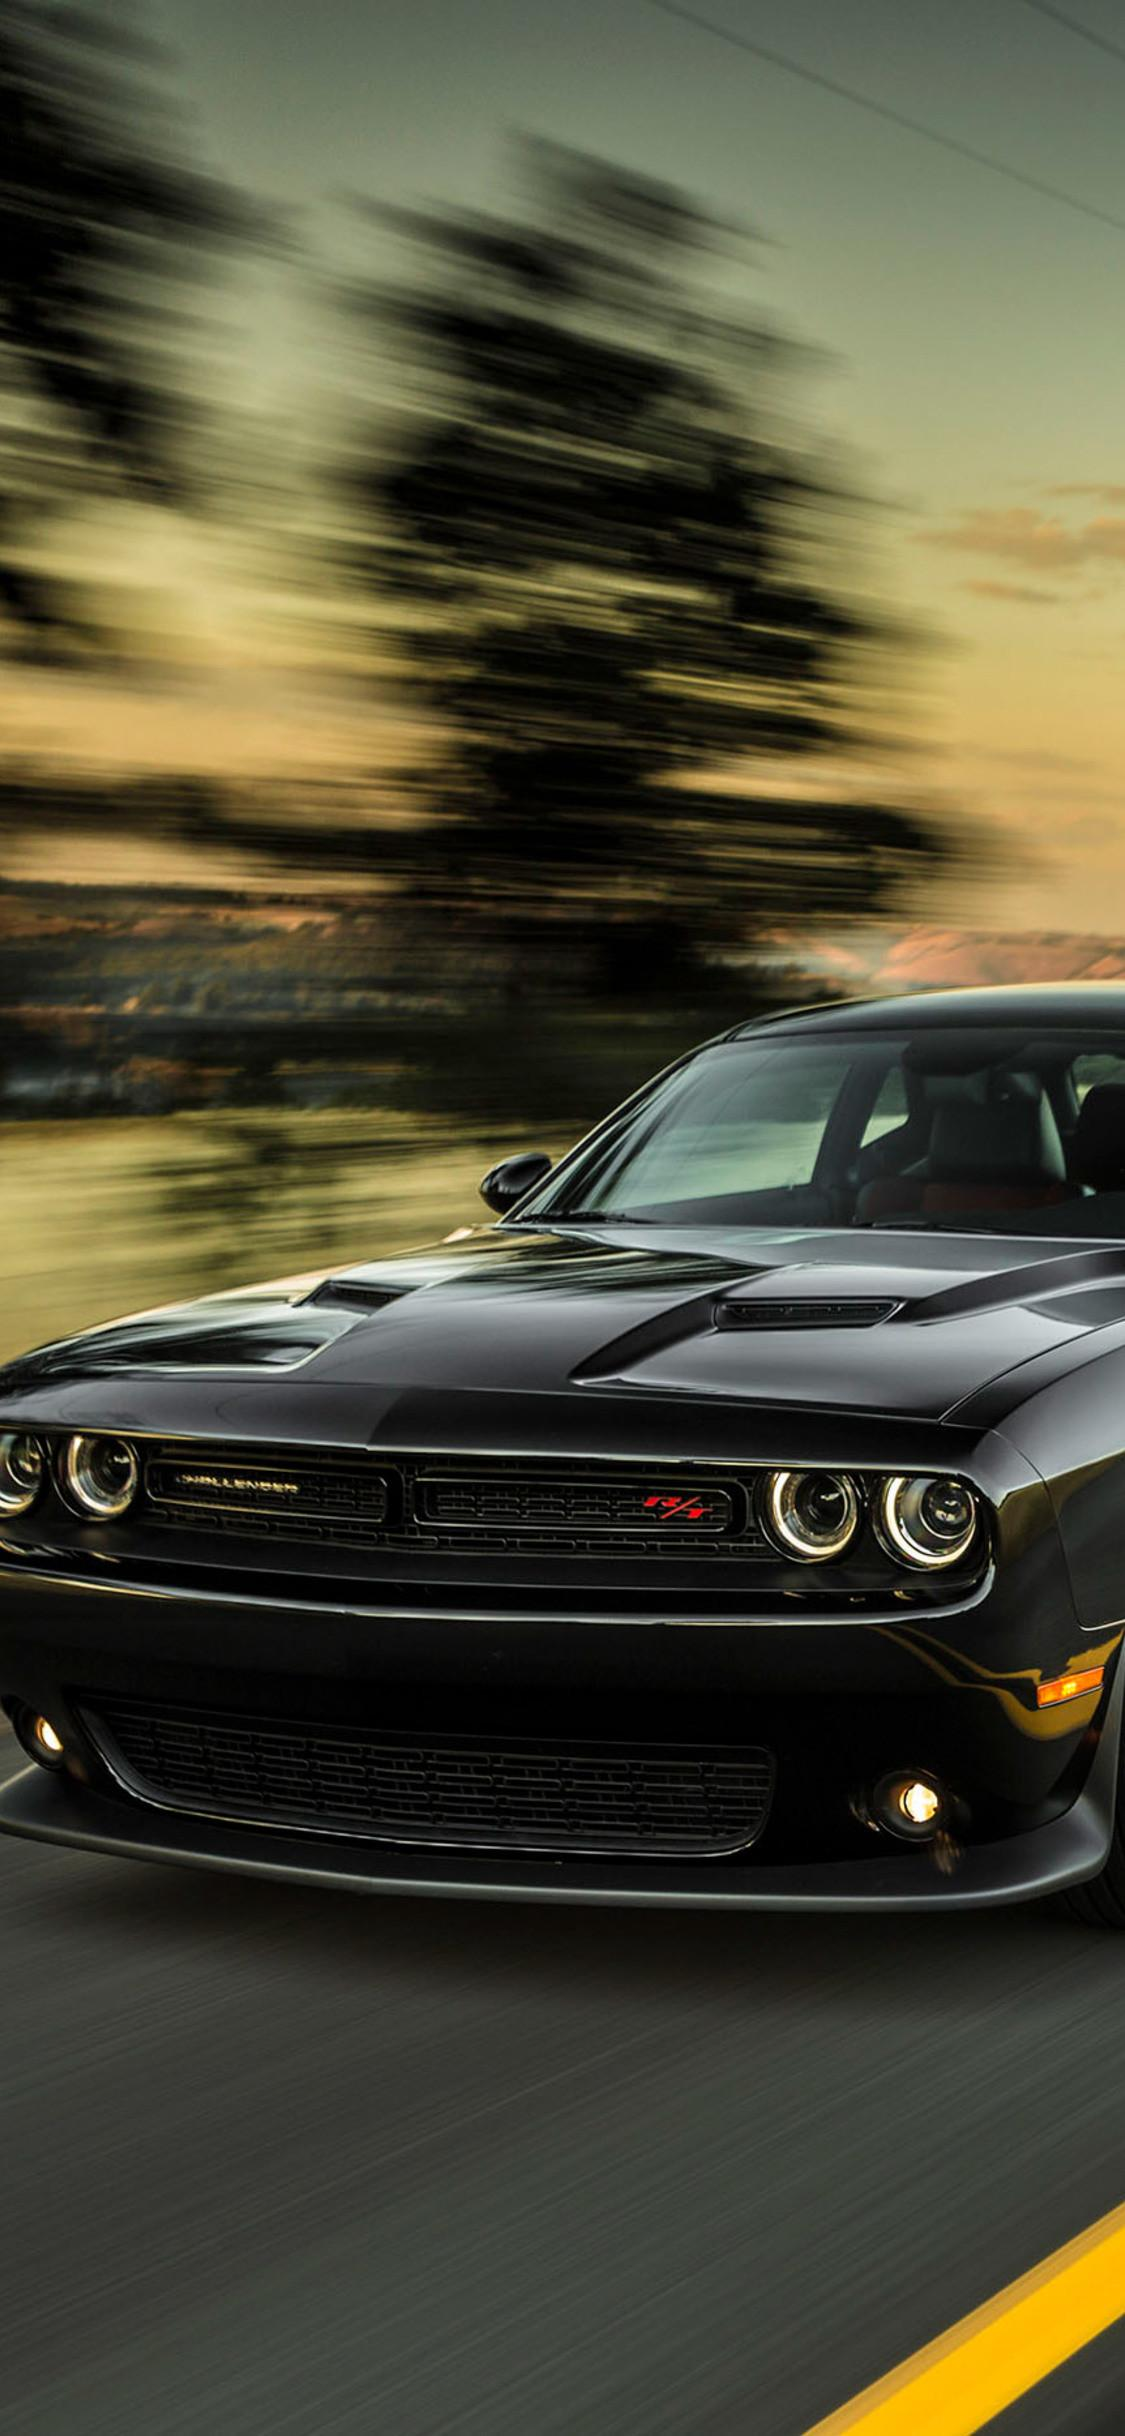 Dodge Challenger Amoled Wallpapers Wallpaper Cave